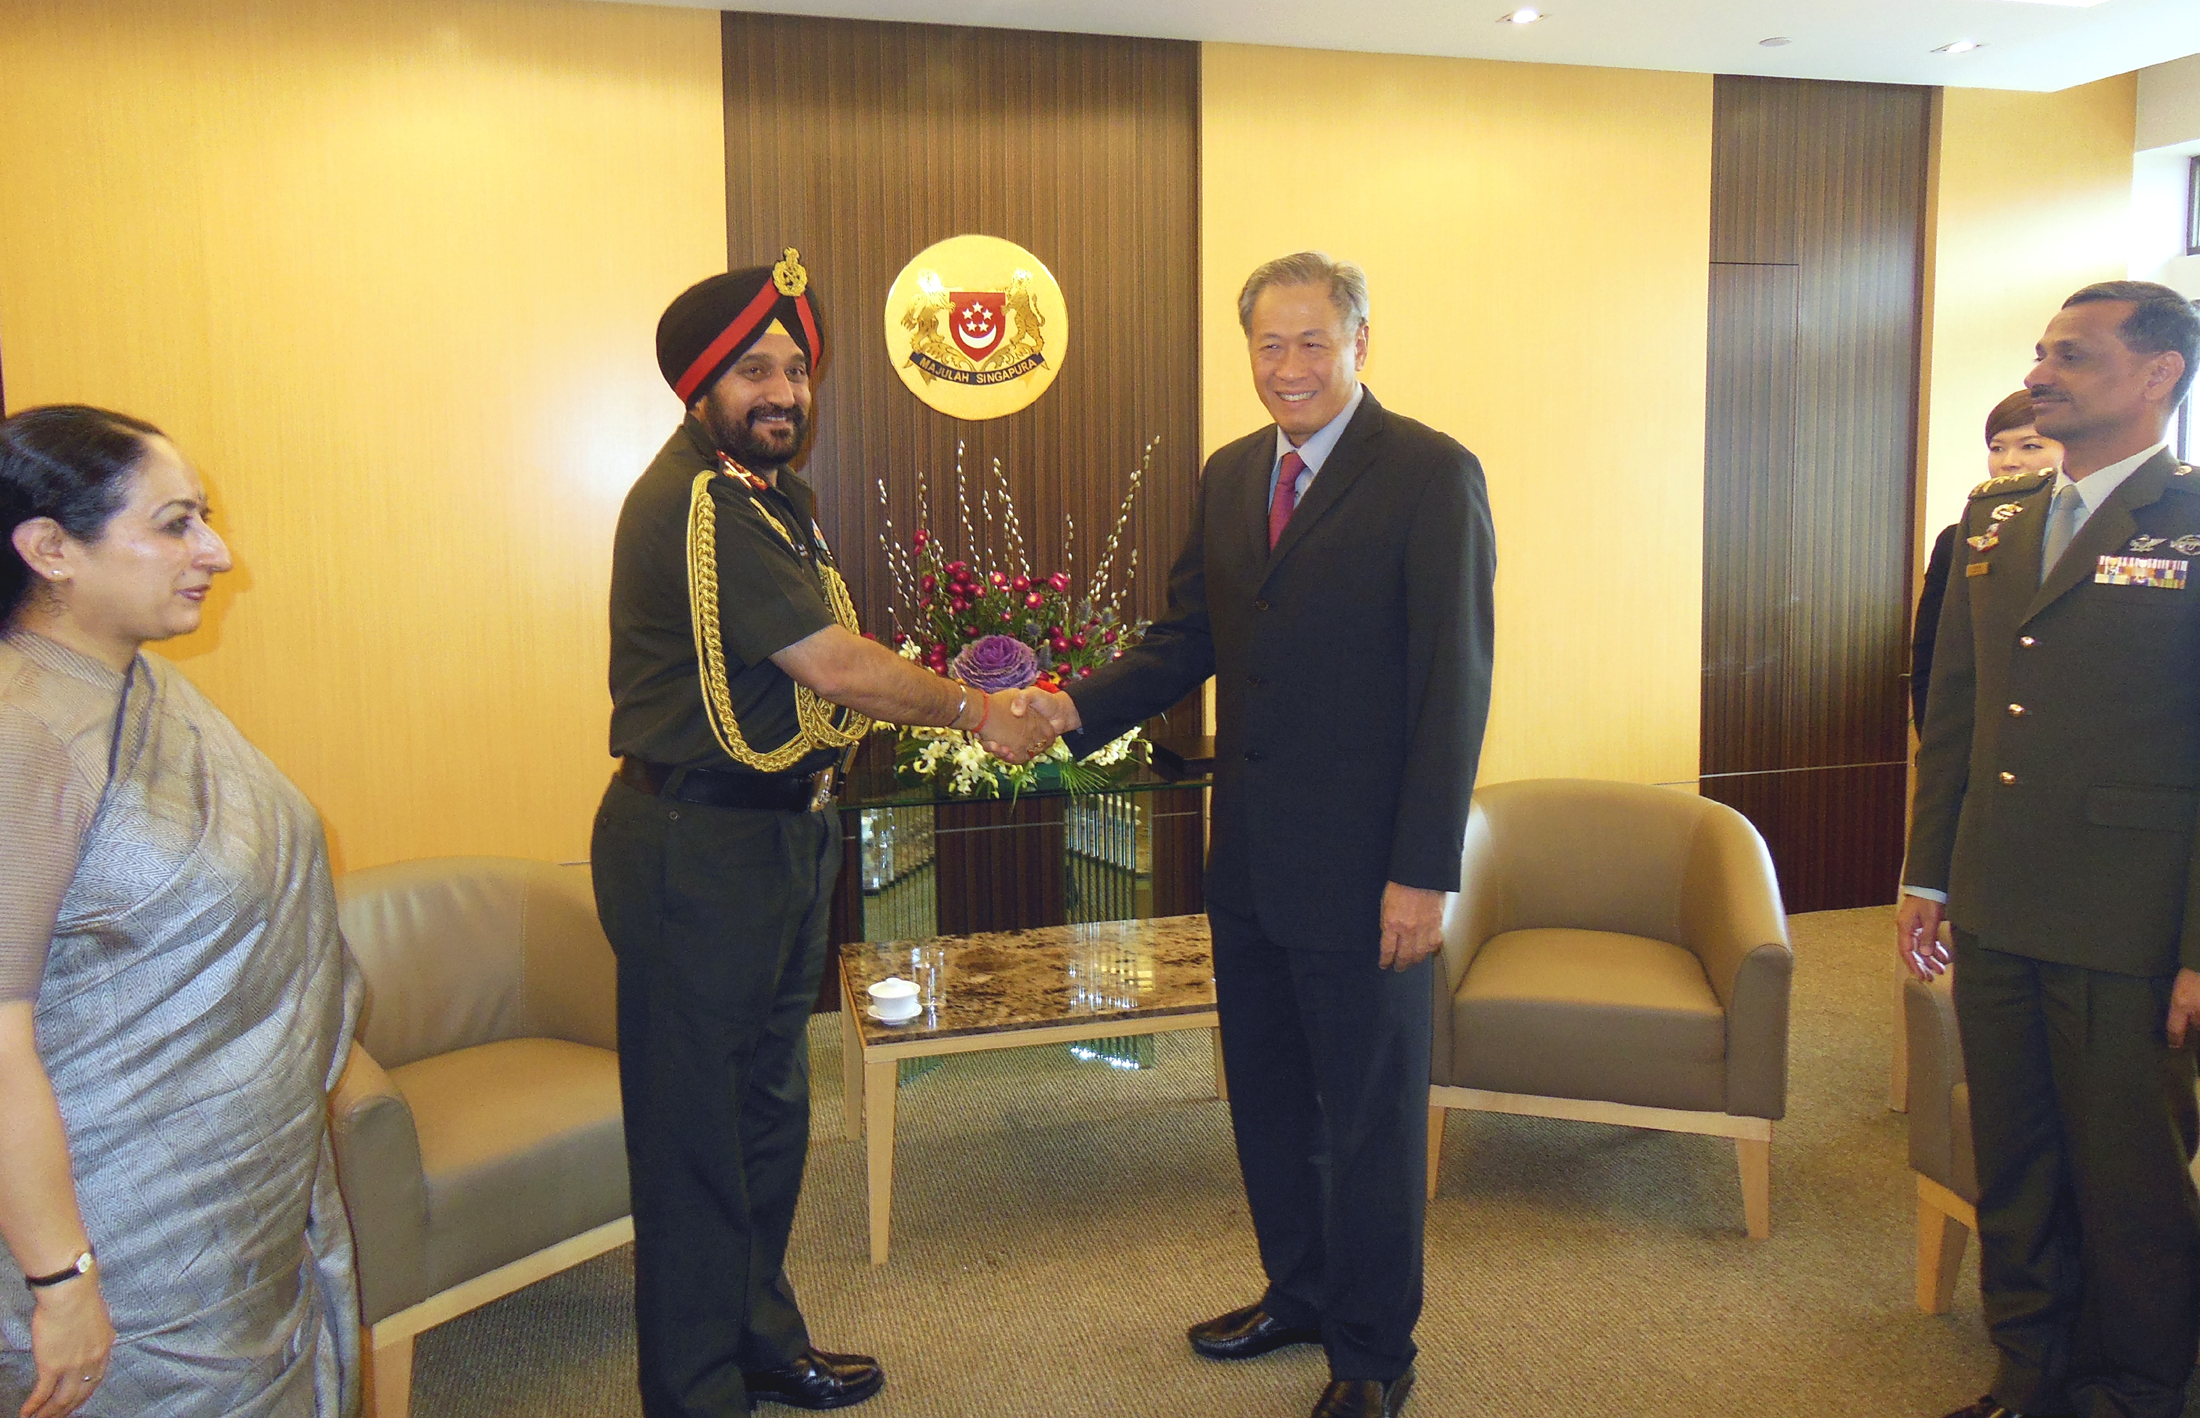 The Chief of Army Staff, General Bikram Singh meeting the Minister for Defence, Singapore, Dr. NG Eng Hen, during his visit to Singapore on January 21, 2014.